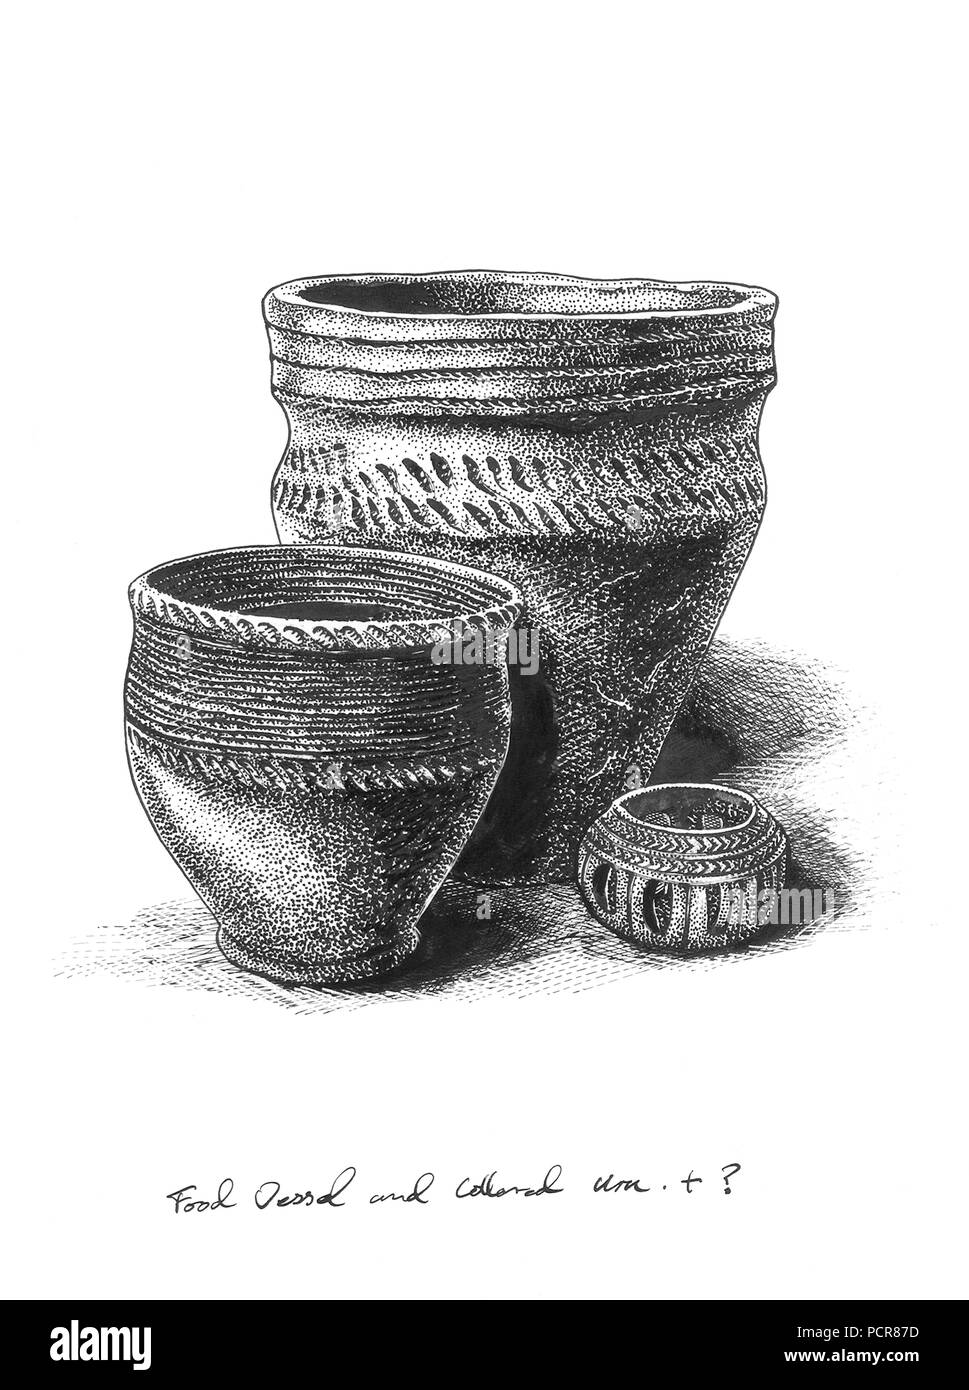 Bronze Age pottery, c1980-c2017. A food vessel, a collared urn and an incense pot. Reconstruction drawing. - Stock Image